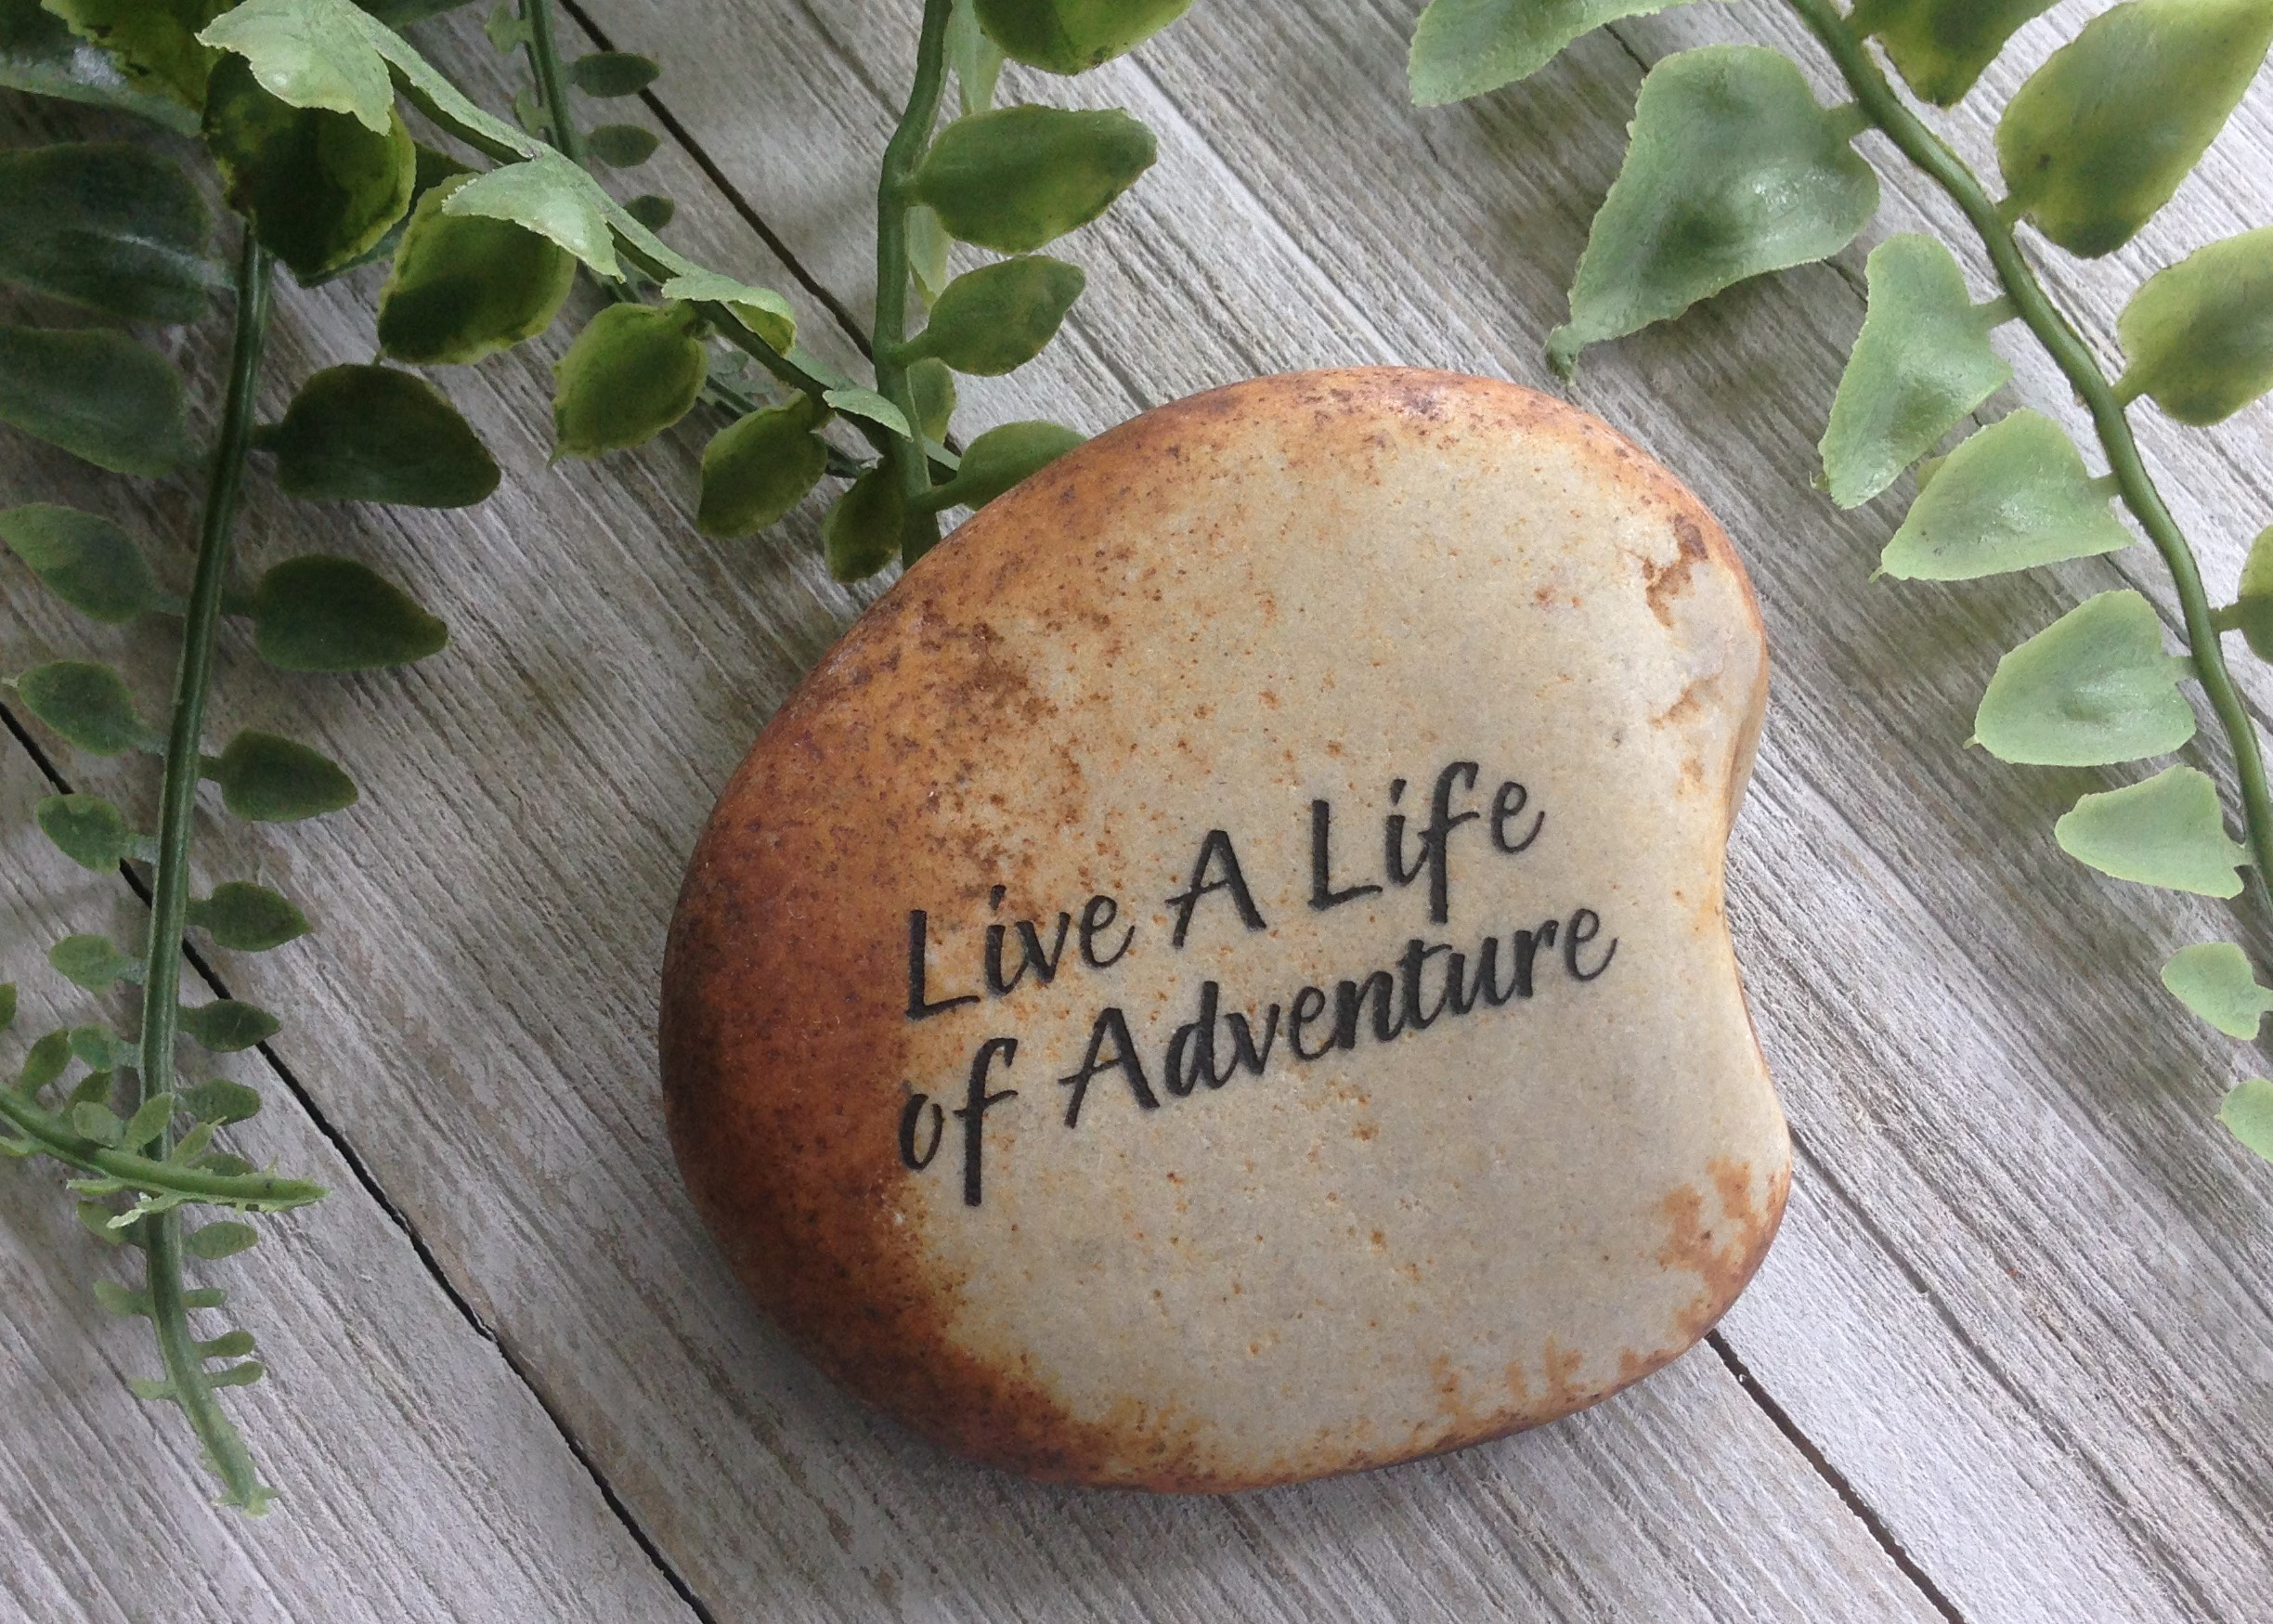 Live a Life of Adventure!